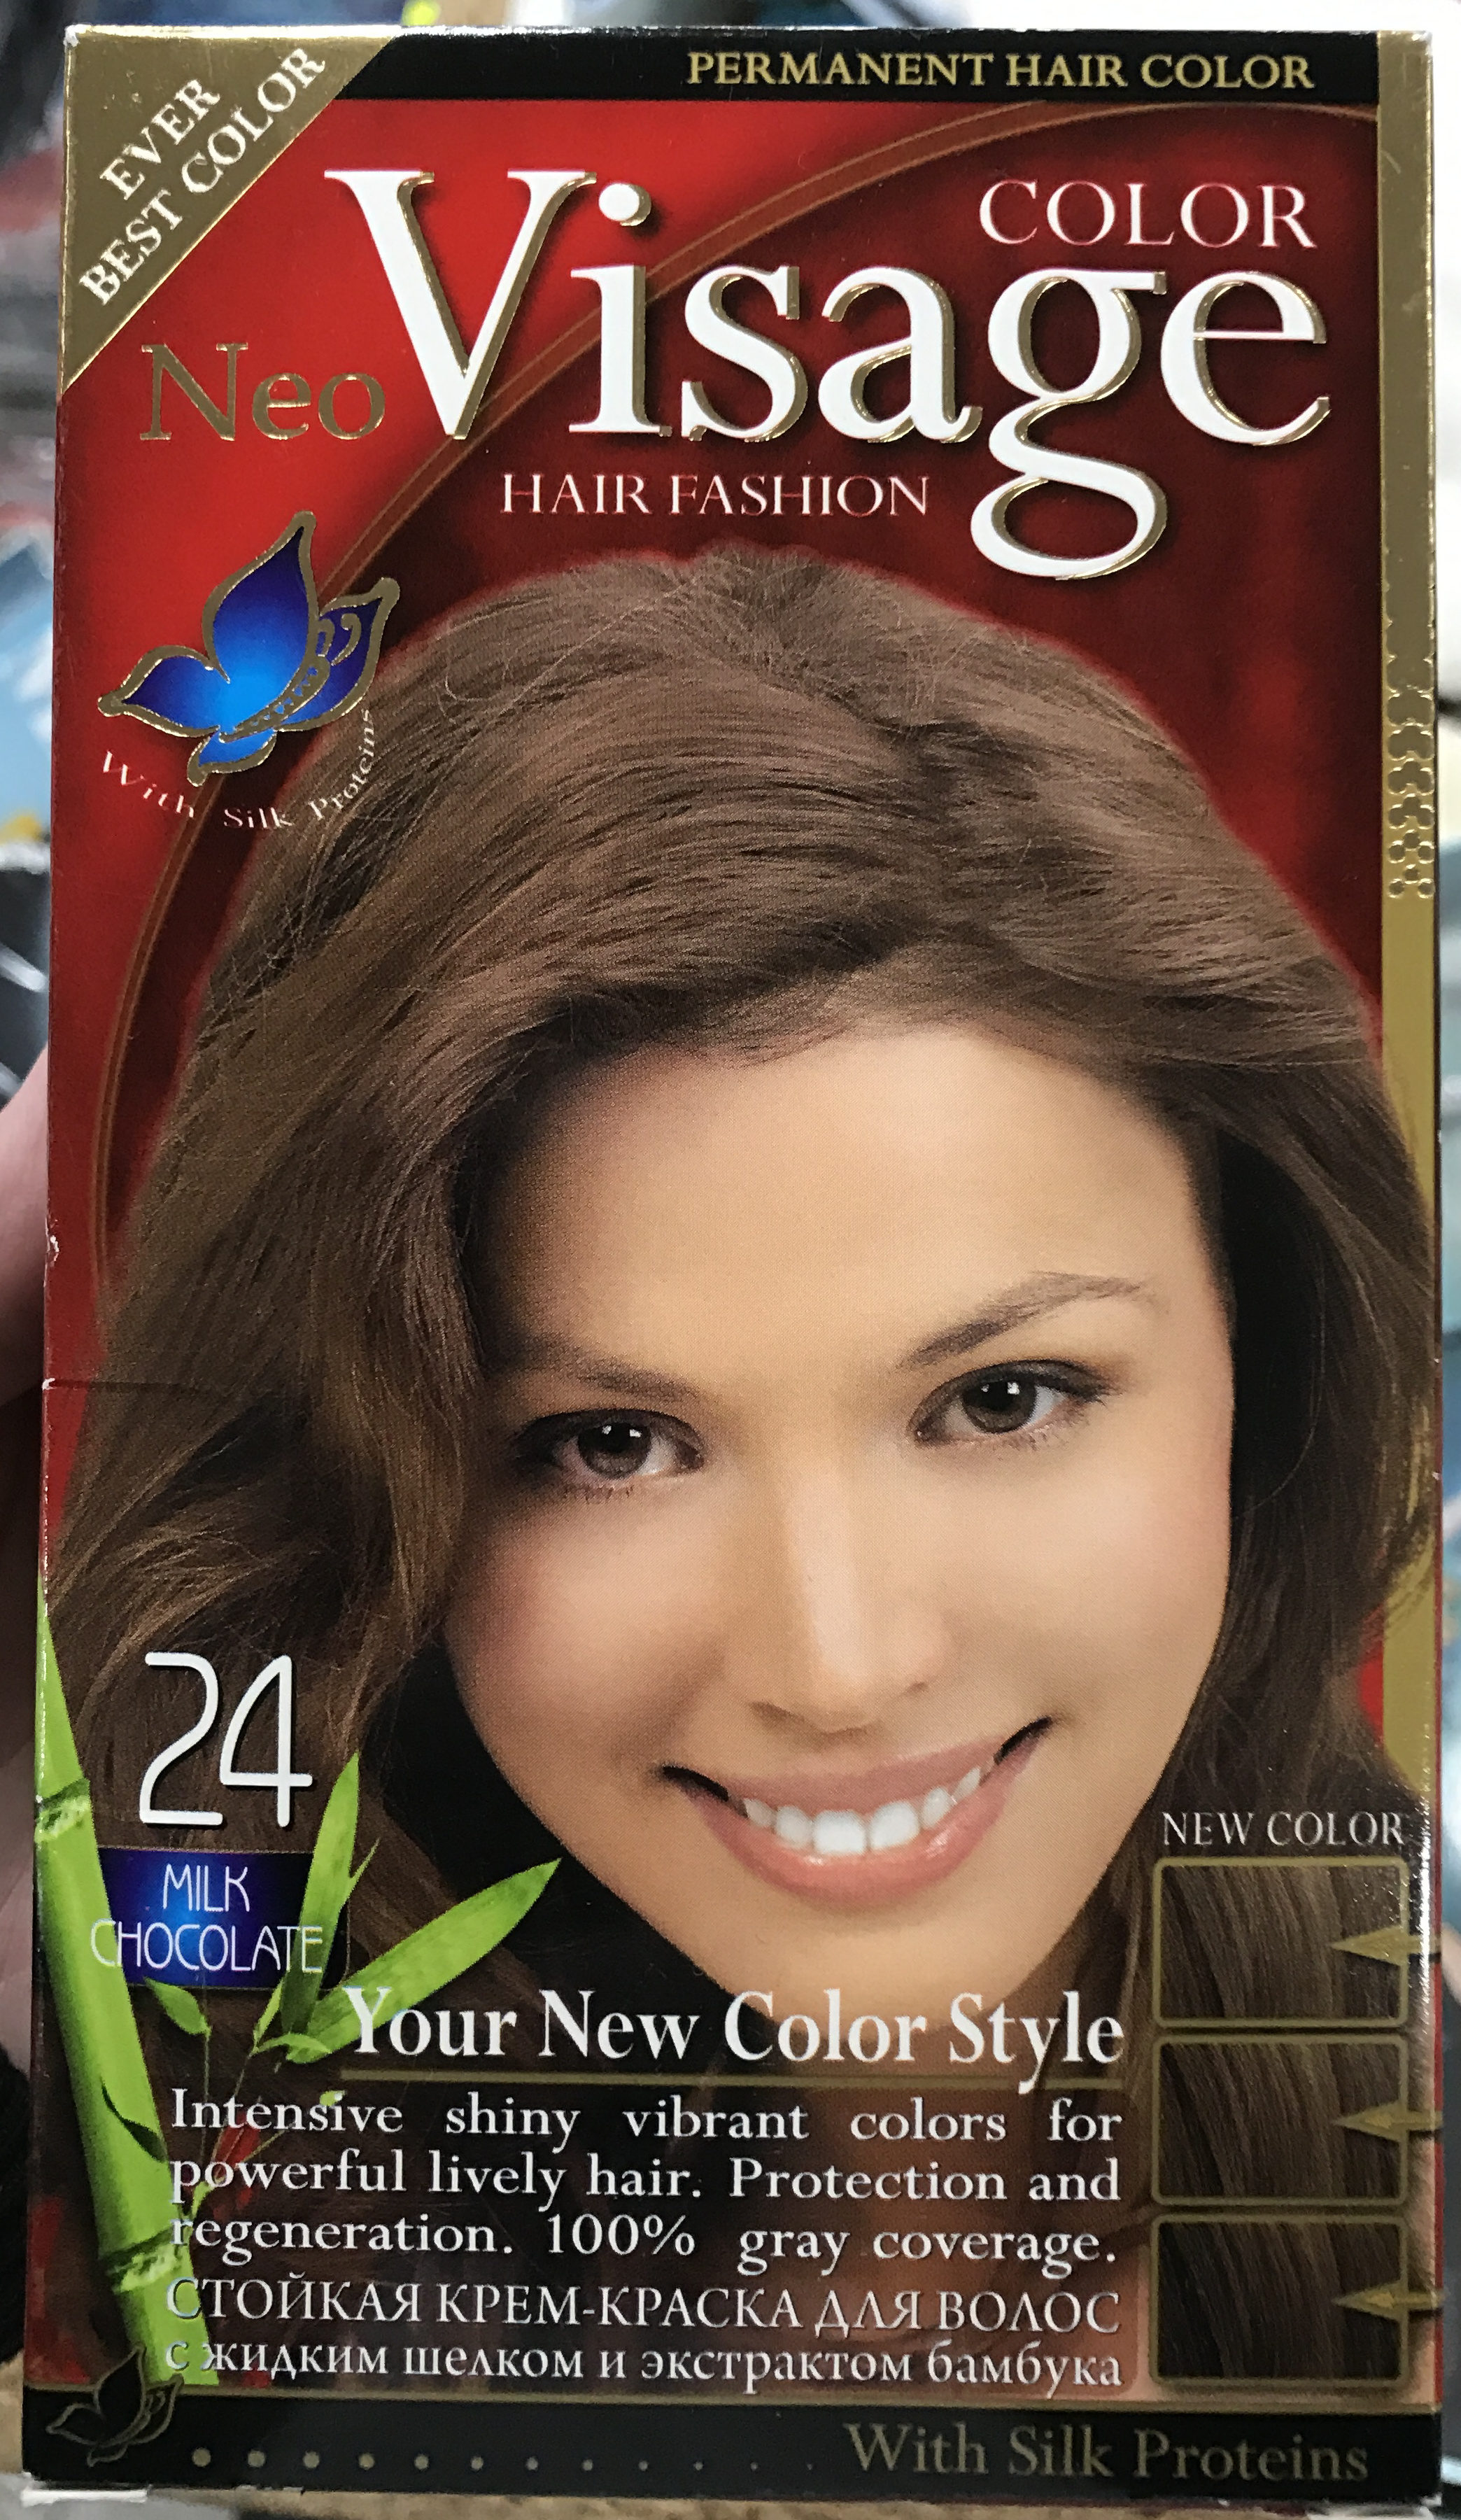 Permanent Hair Color Milk Chocolate (24) - Product - fr